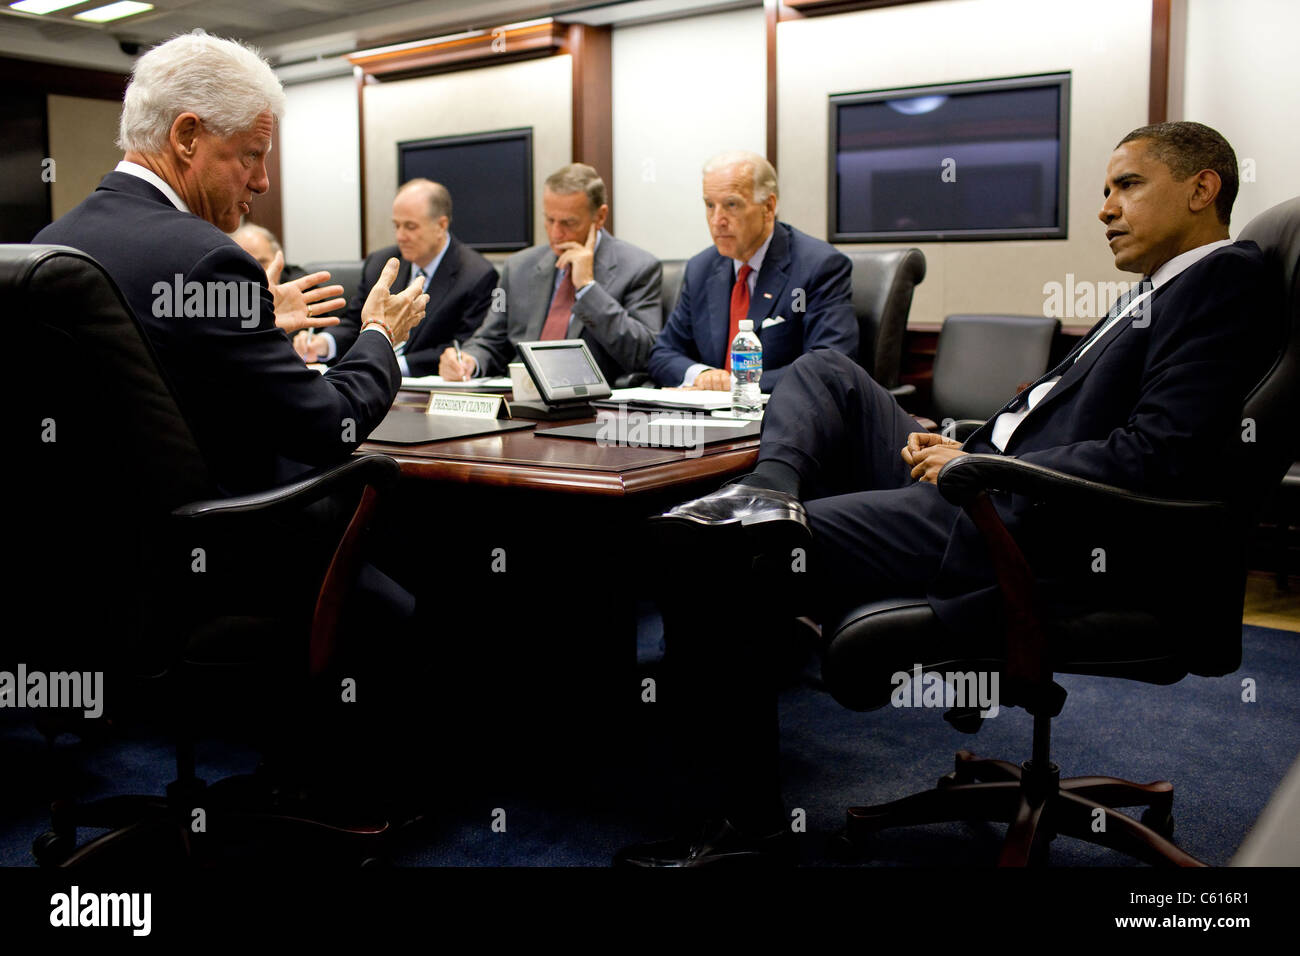 Former President Clinton briefs President Obama and National Security Advisors after his recent trip to North Korea. - Stock Image